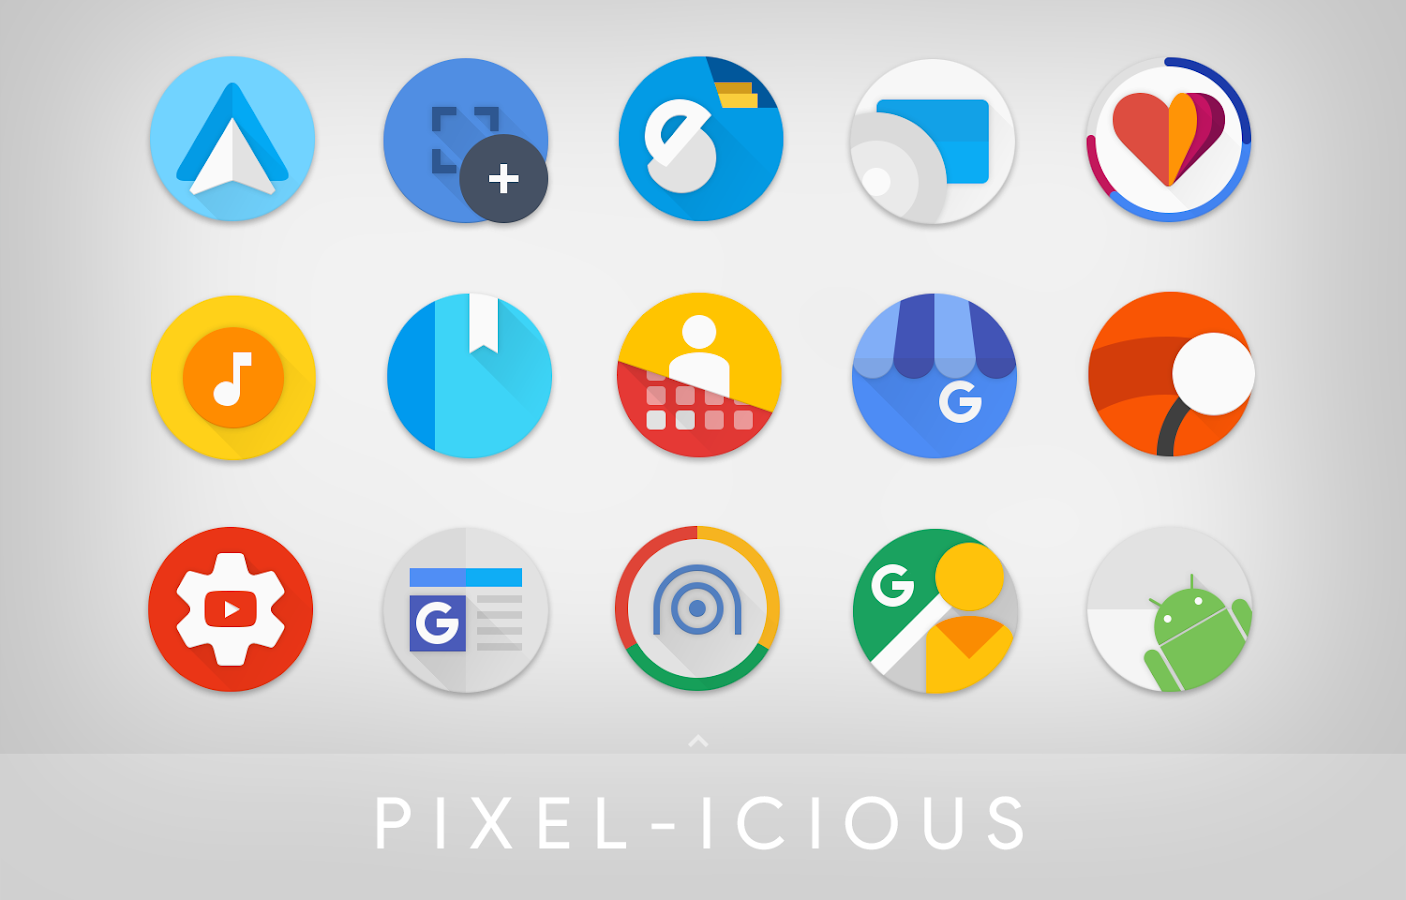 PIXELICIOUS ICON PACK Screenshot 4